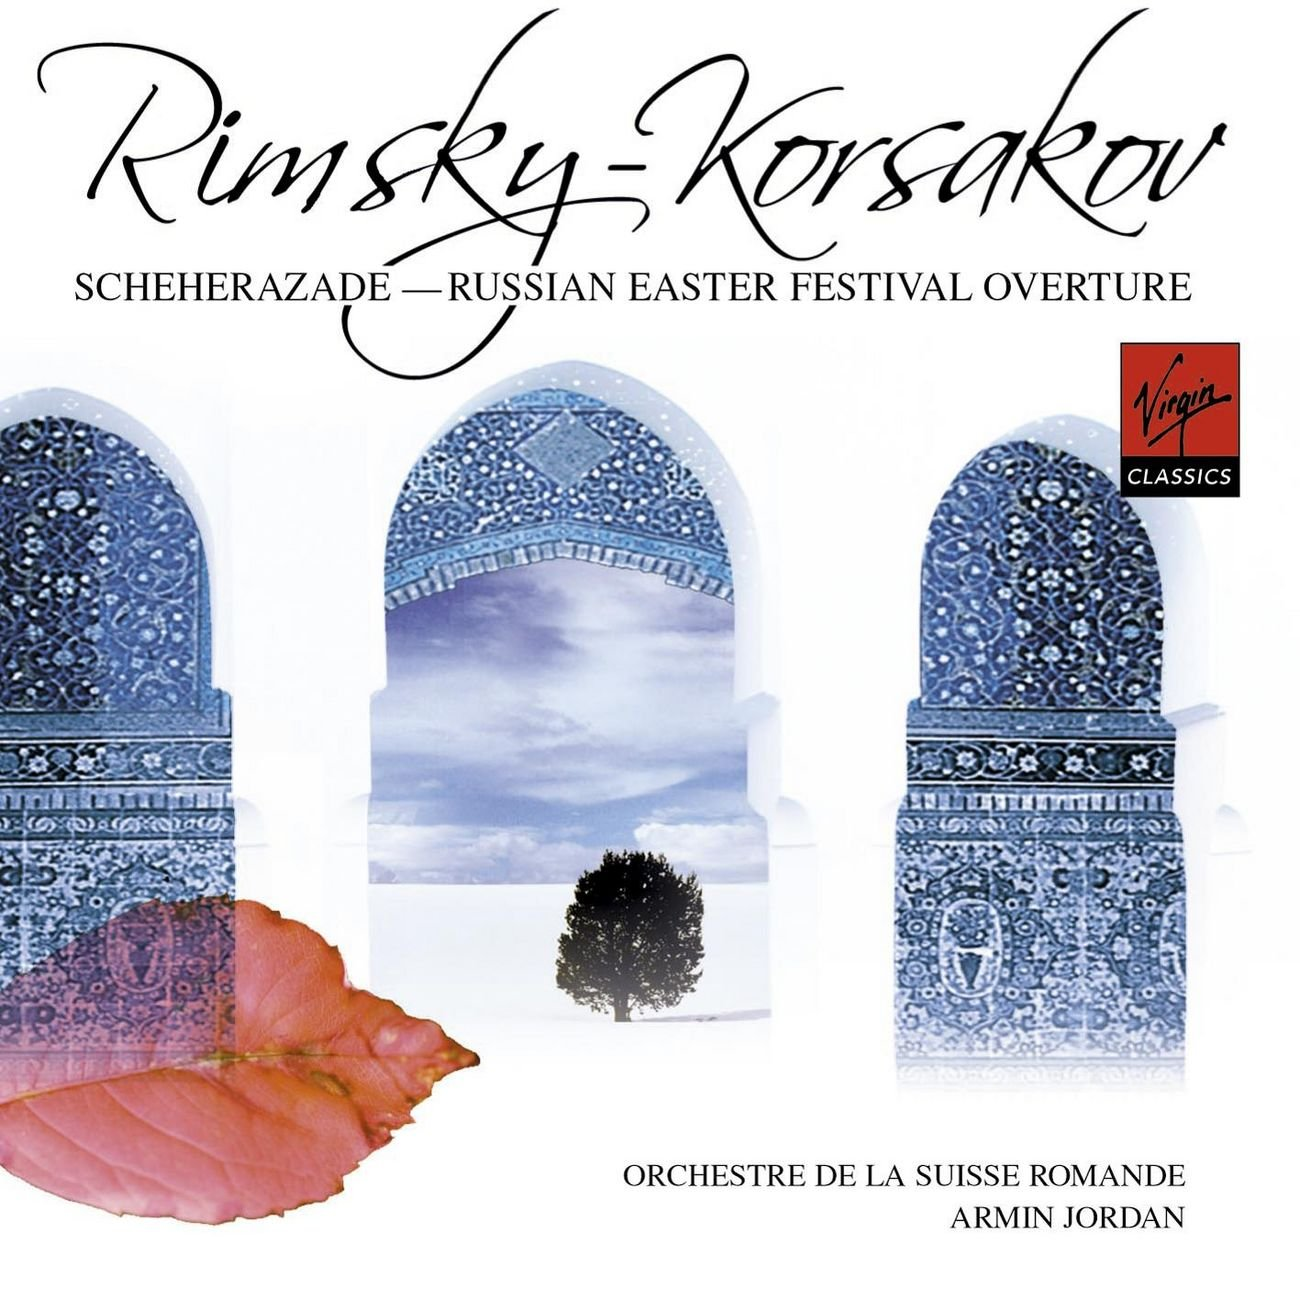 Sheherazade Russian Easter Festival by Virgin Classics